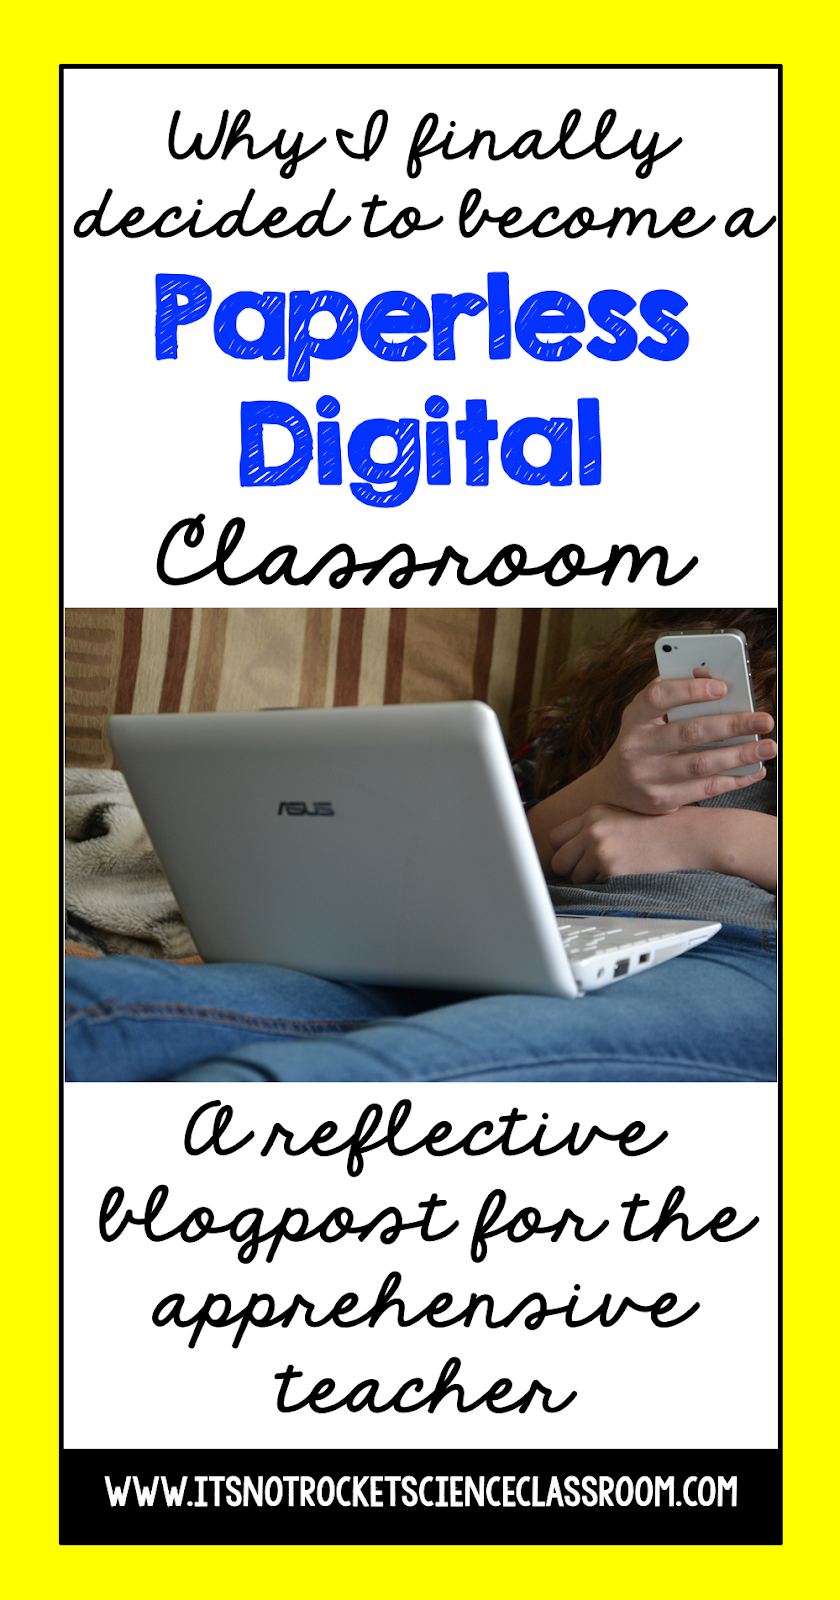 Teaching with technology is the new era of the education field.  Read how and why I finally decided to become a paperless digital classroom, and the digital resources I created for other 1:1 teachers to use with Google Drive or Microsoft OneDrive. Hopefully this will encourage other secondary science teachers who are thinking about transitioning to using more educational technology!